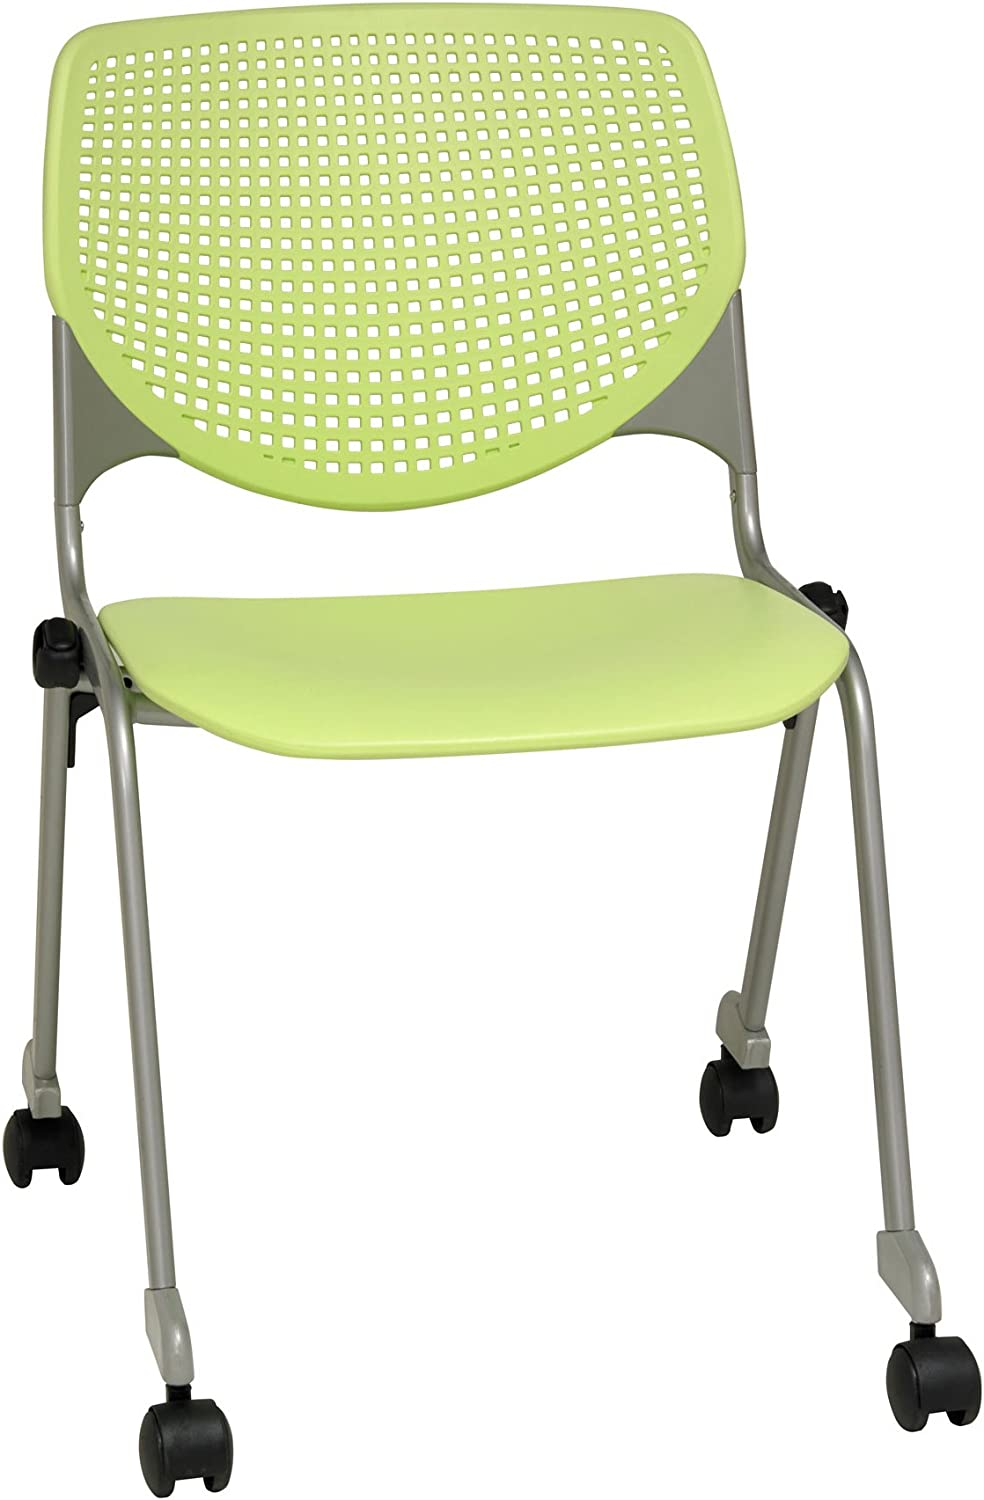 KFI Seating Kool Series Polypropylene Stack Chair with Perforated Back and  Casters, Lime Green Finish